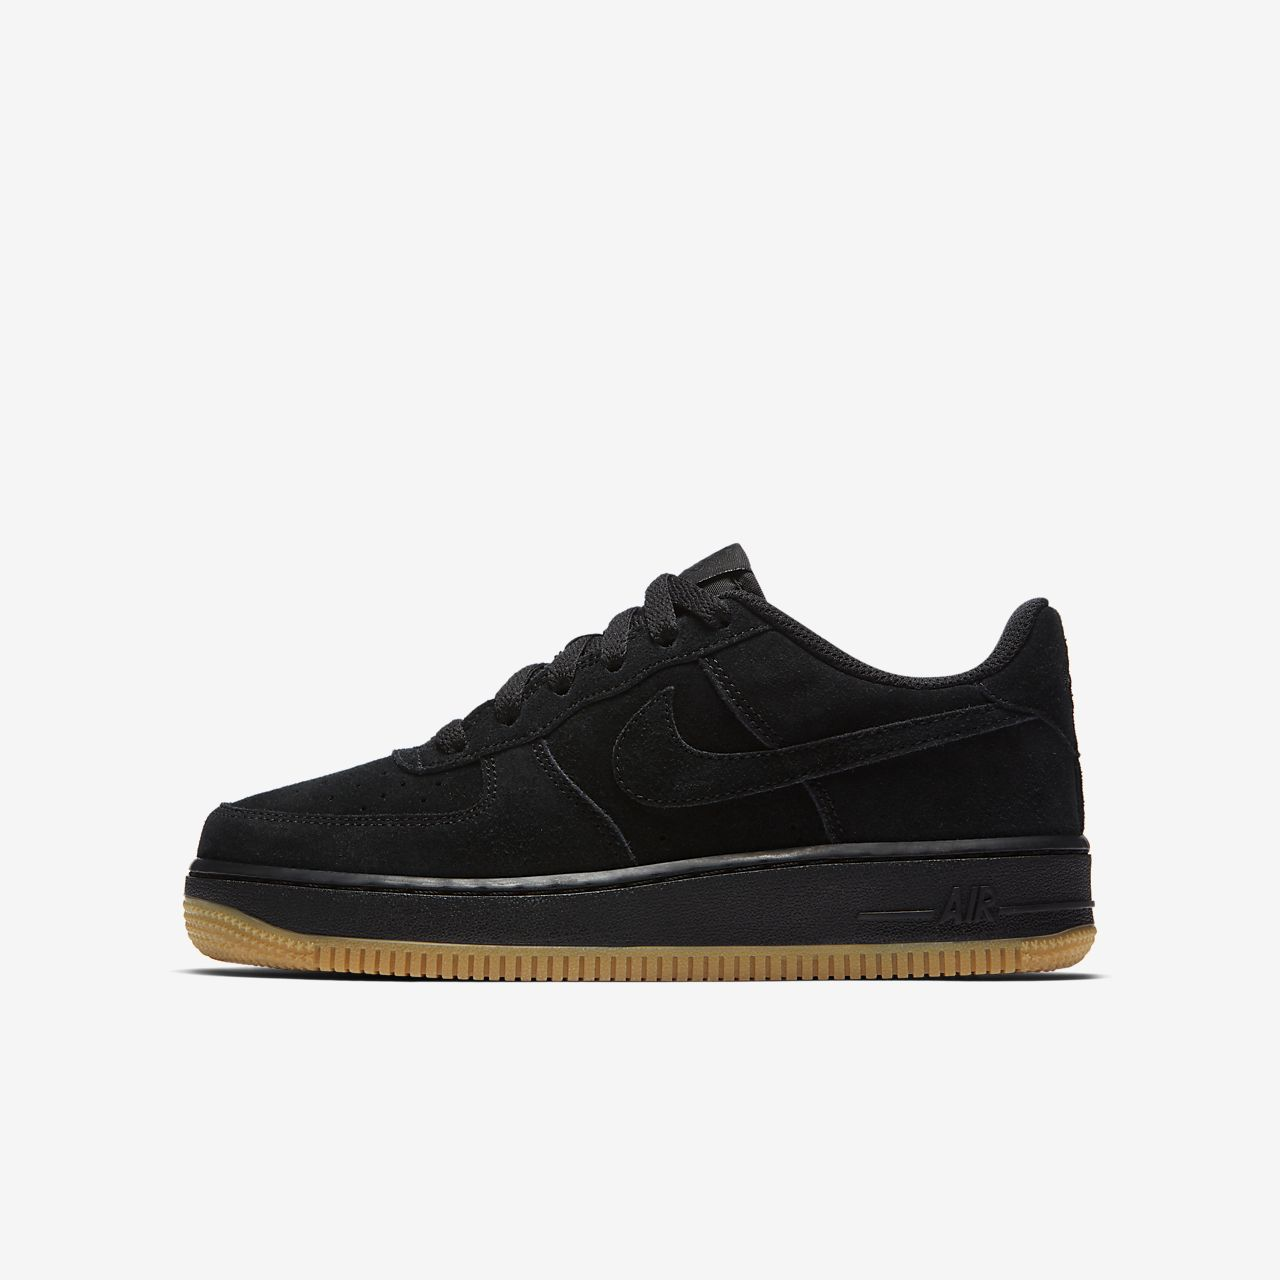 competitive price 8f2f3 f2638 ... Nike Air Force 1 Premium Older Kids  Shoe